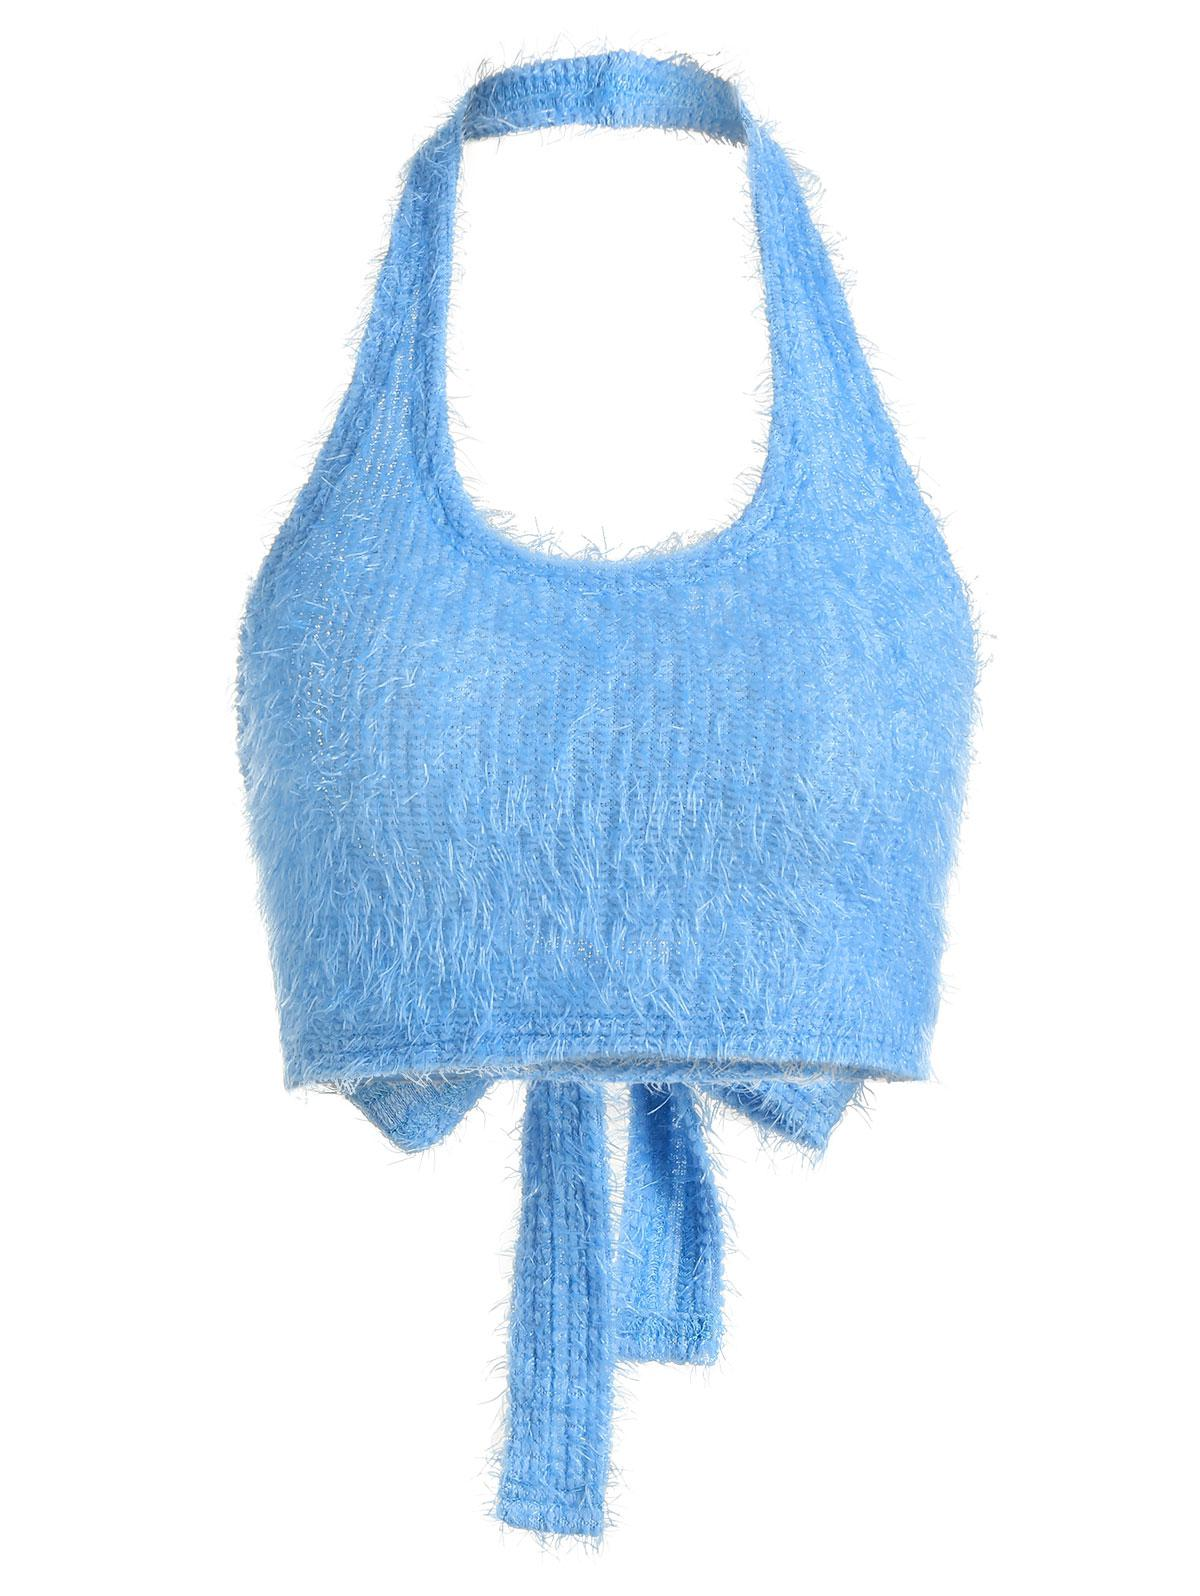 ZAFUL Fuzzy Knitted Halter Tie Back Tank Top